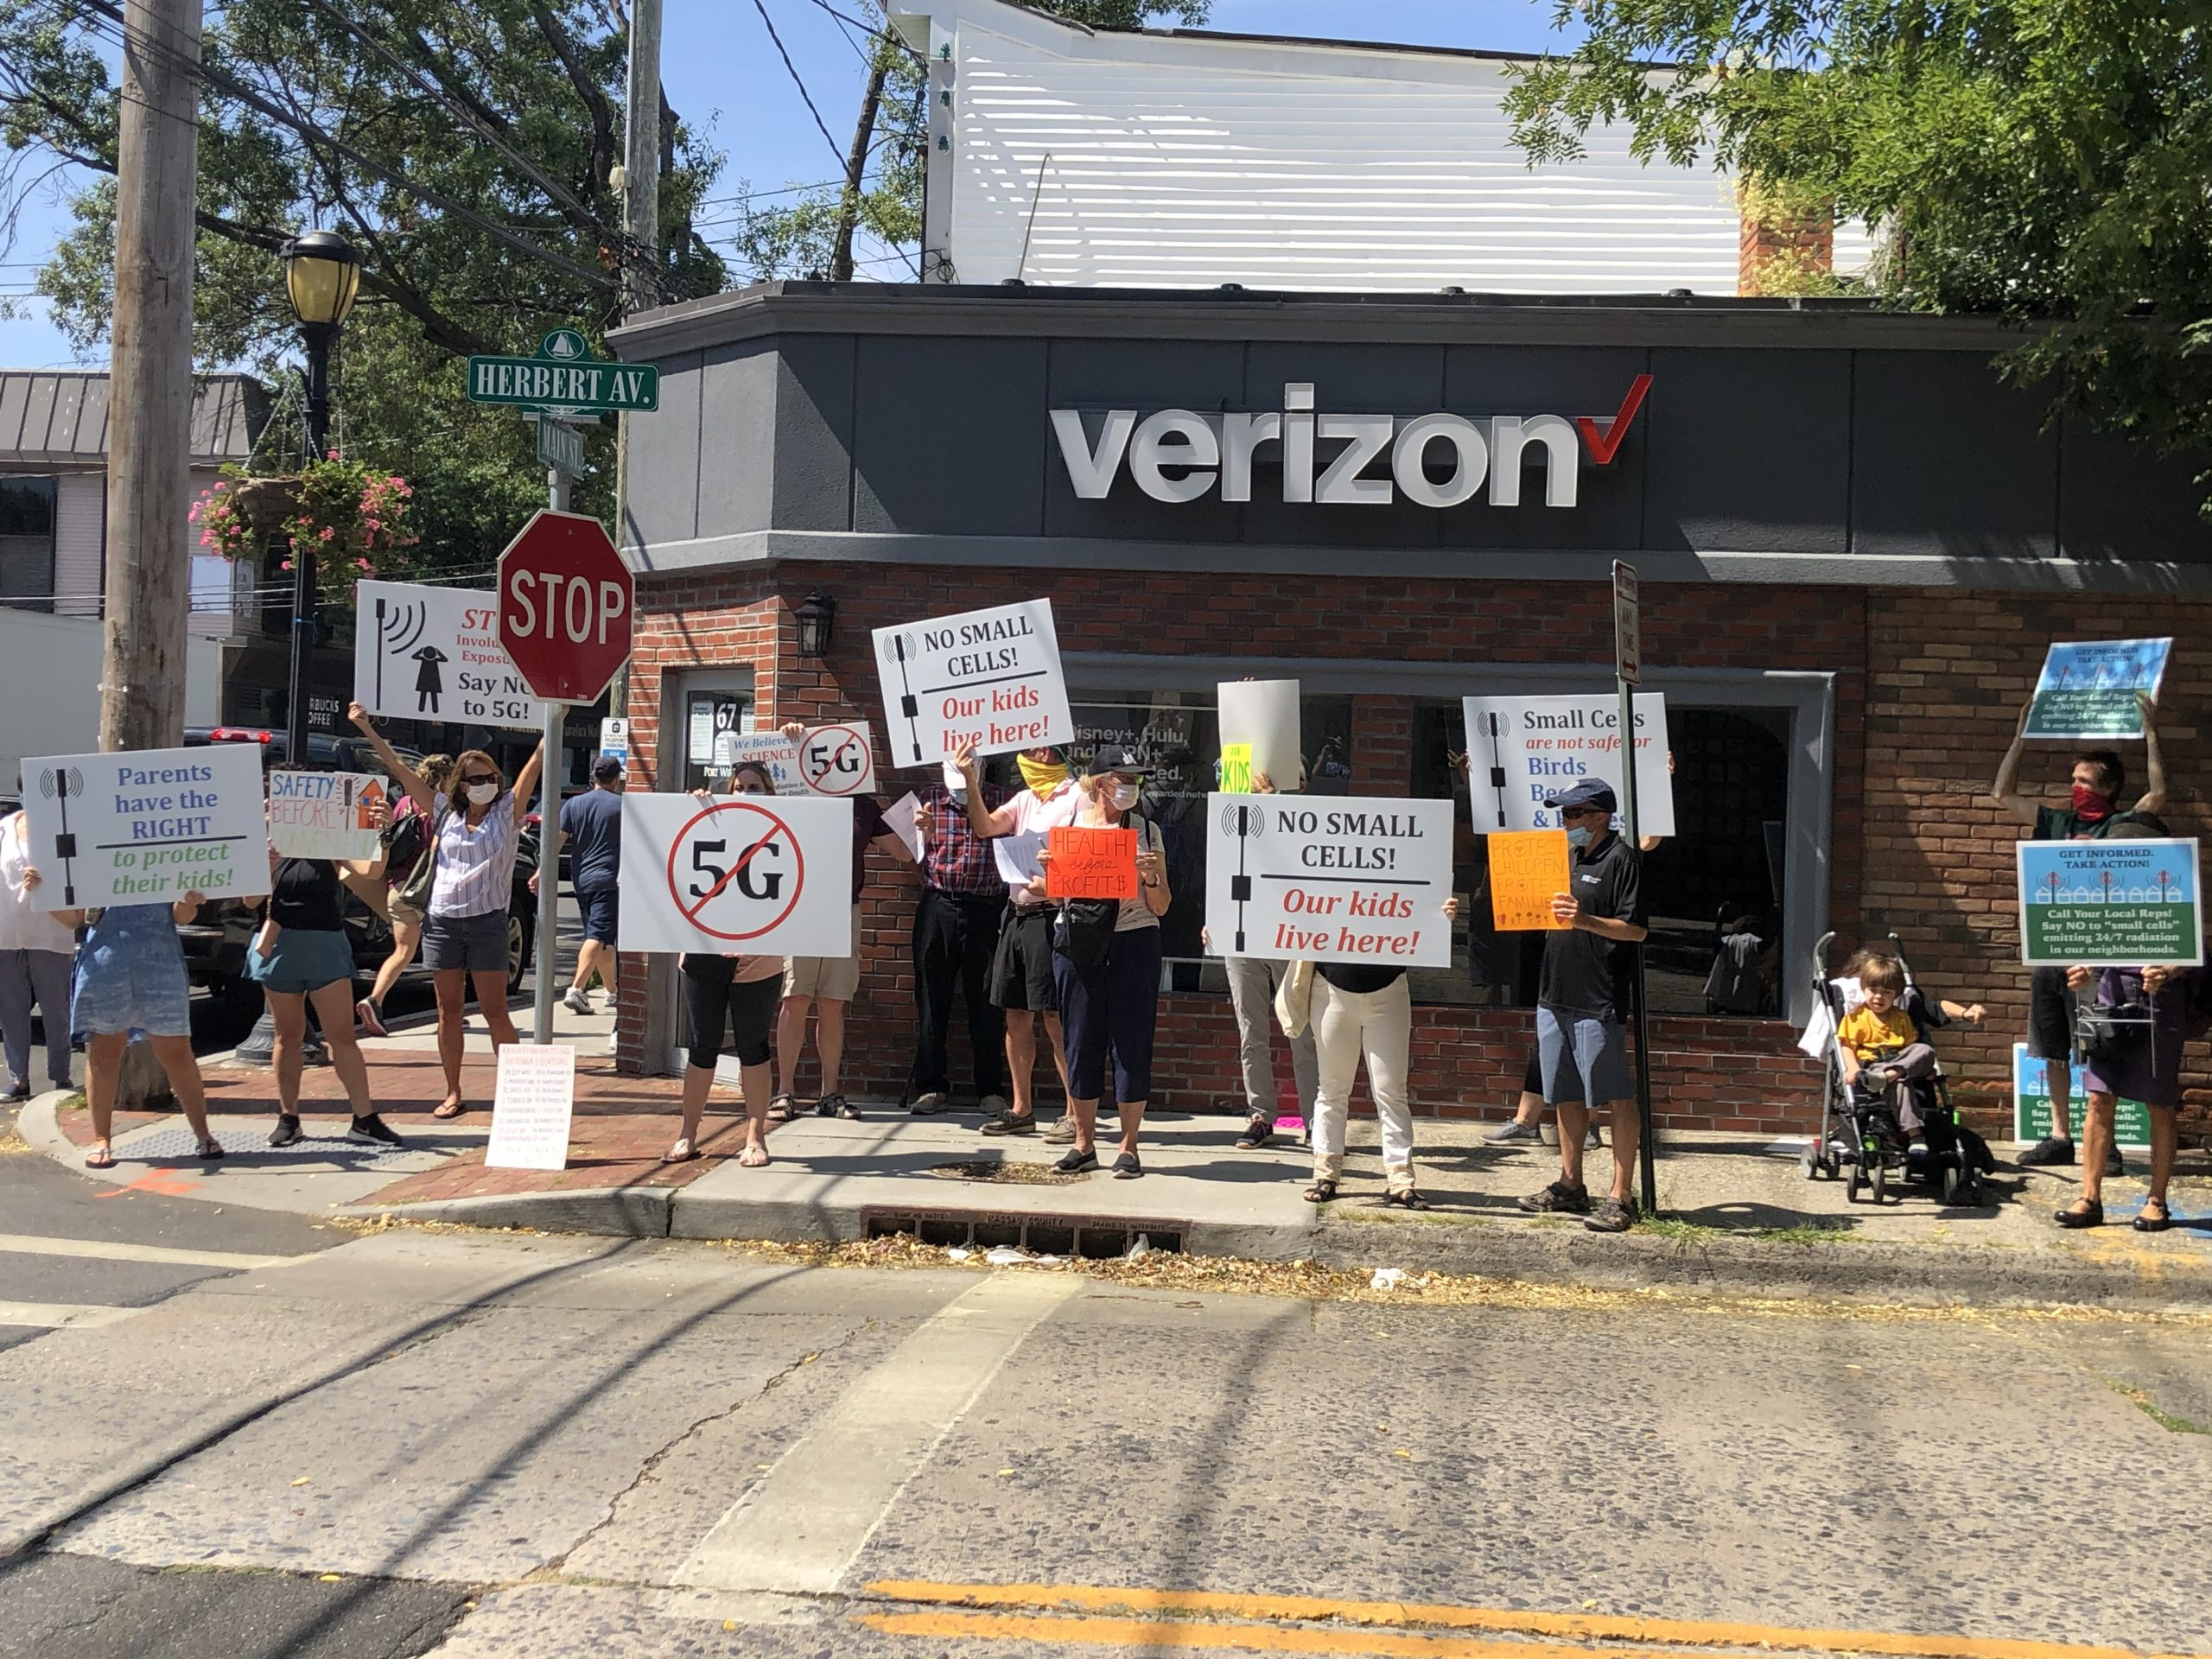 Port residents protest 5G towers outside Verizon store - News - The Island  Now